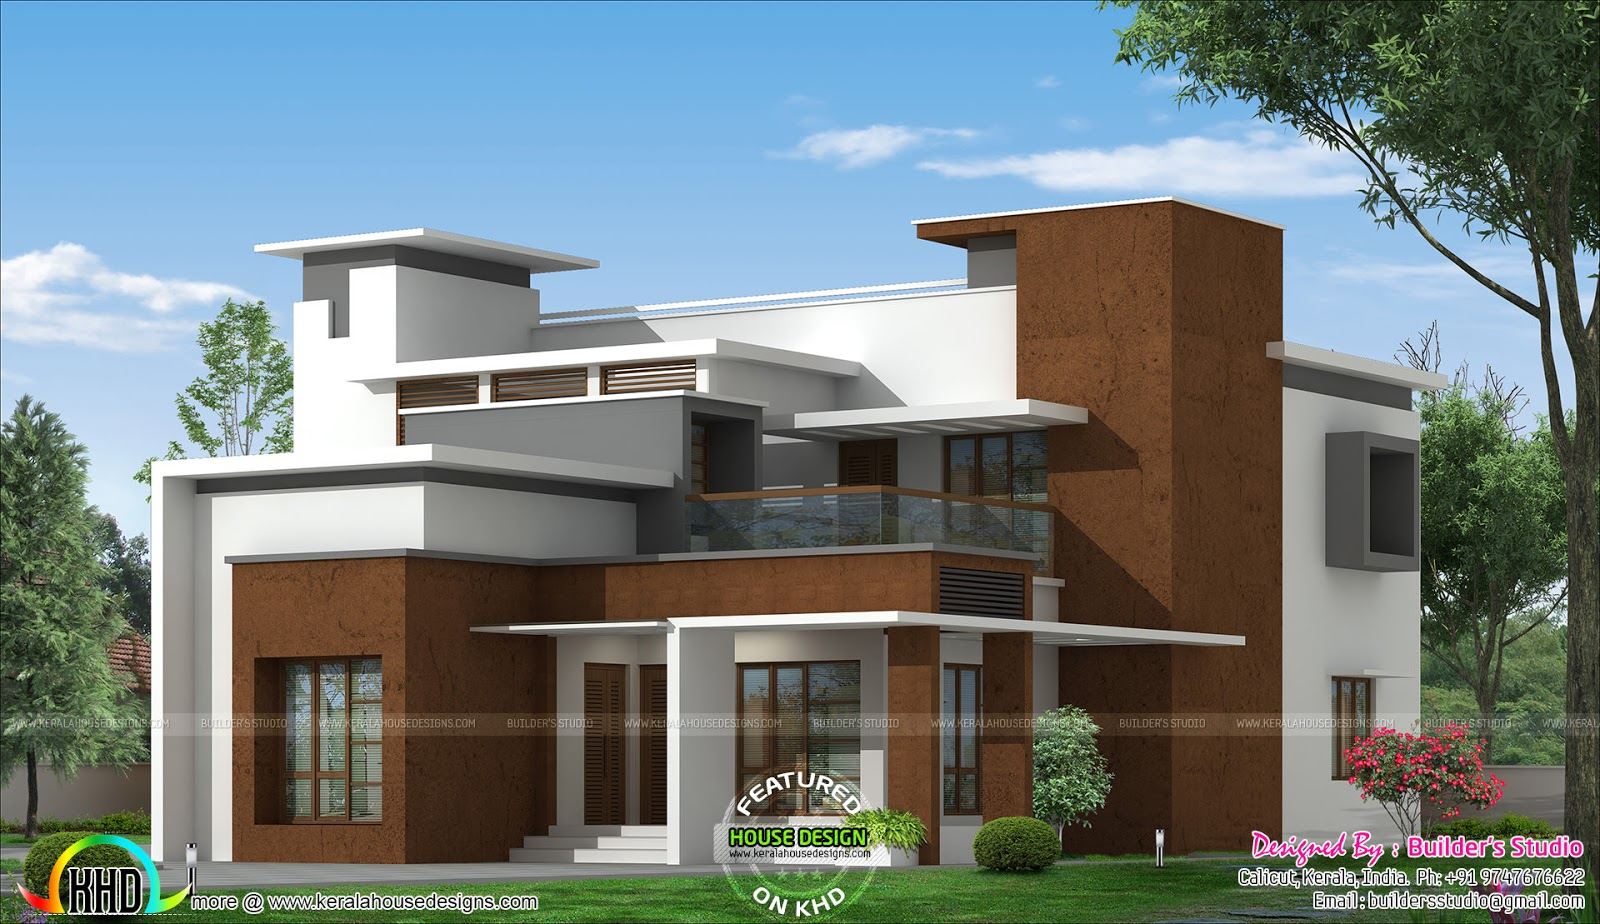 Box type modern home architecture plan kerala home for Types house designs